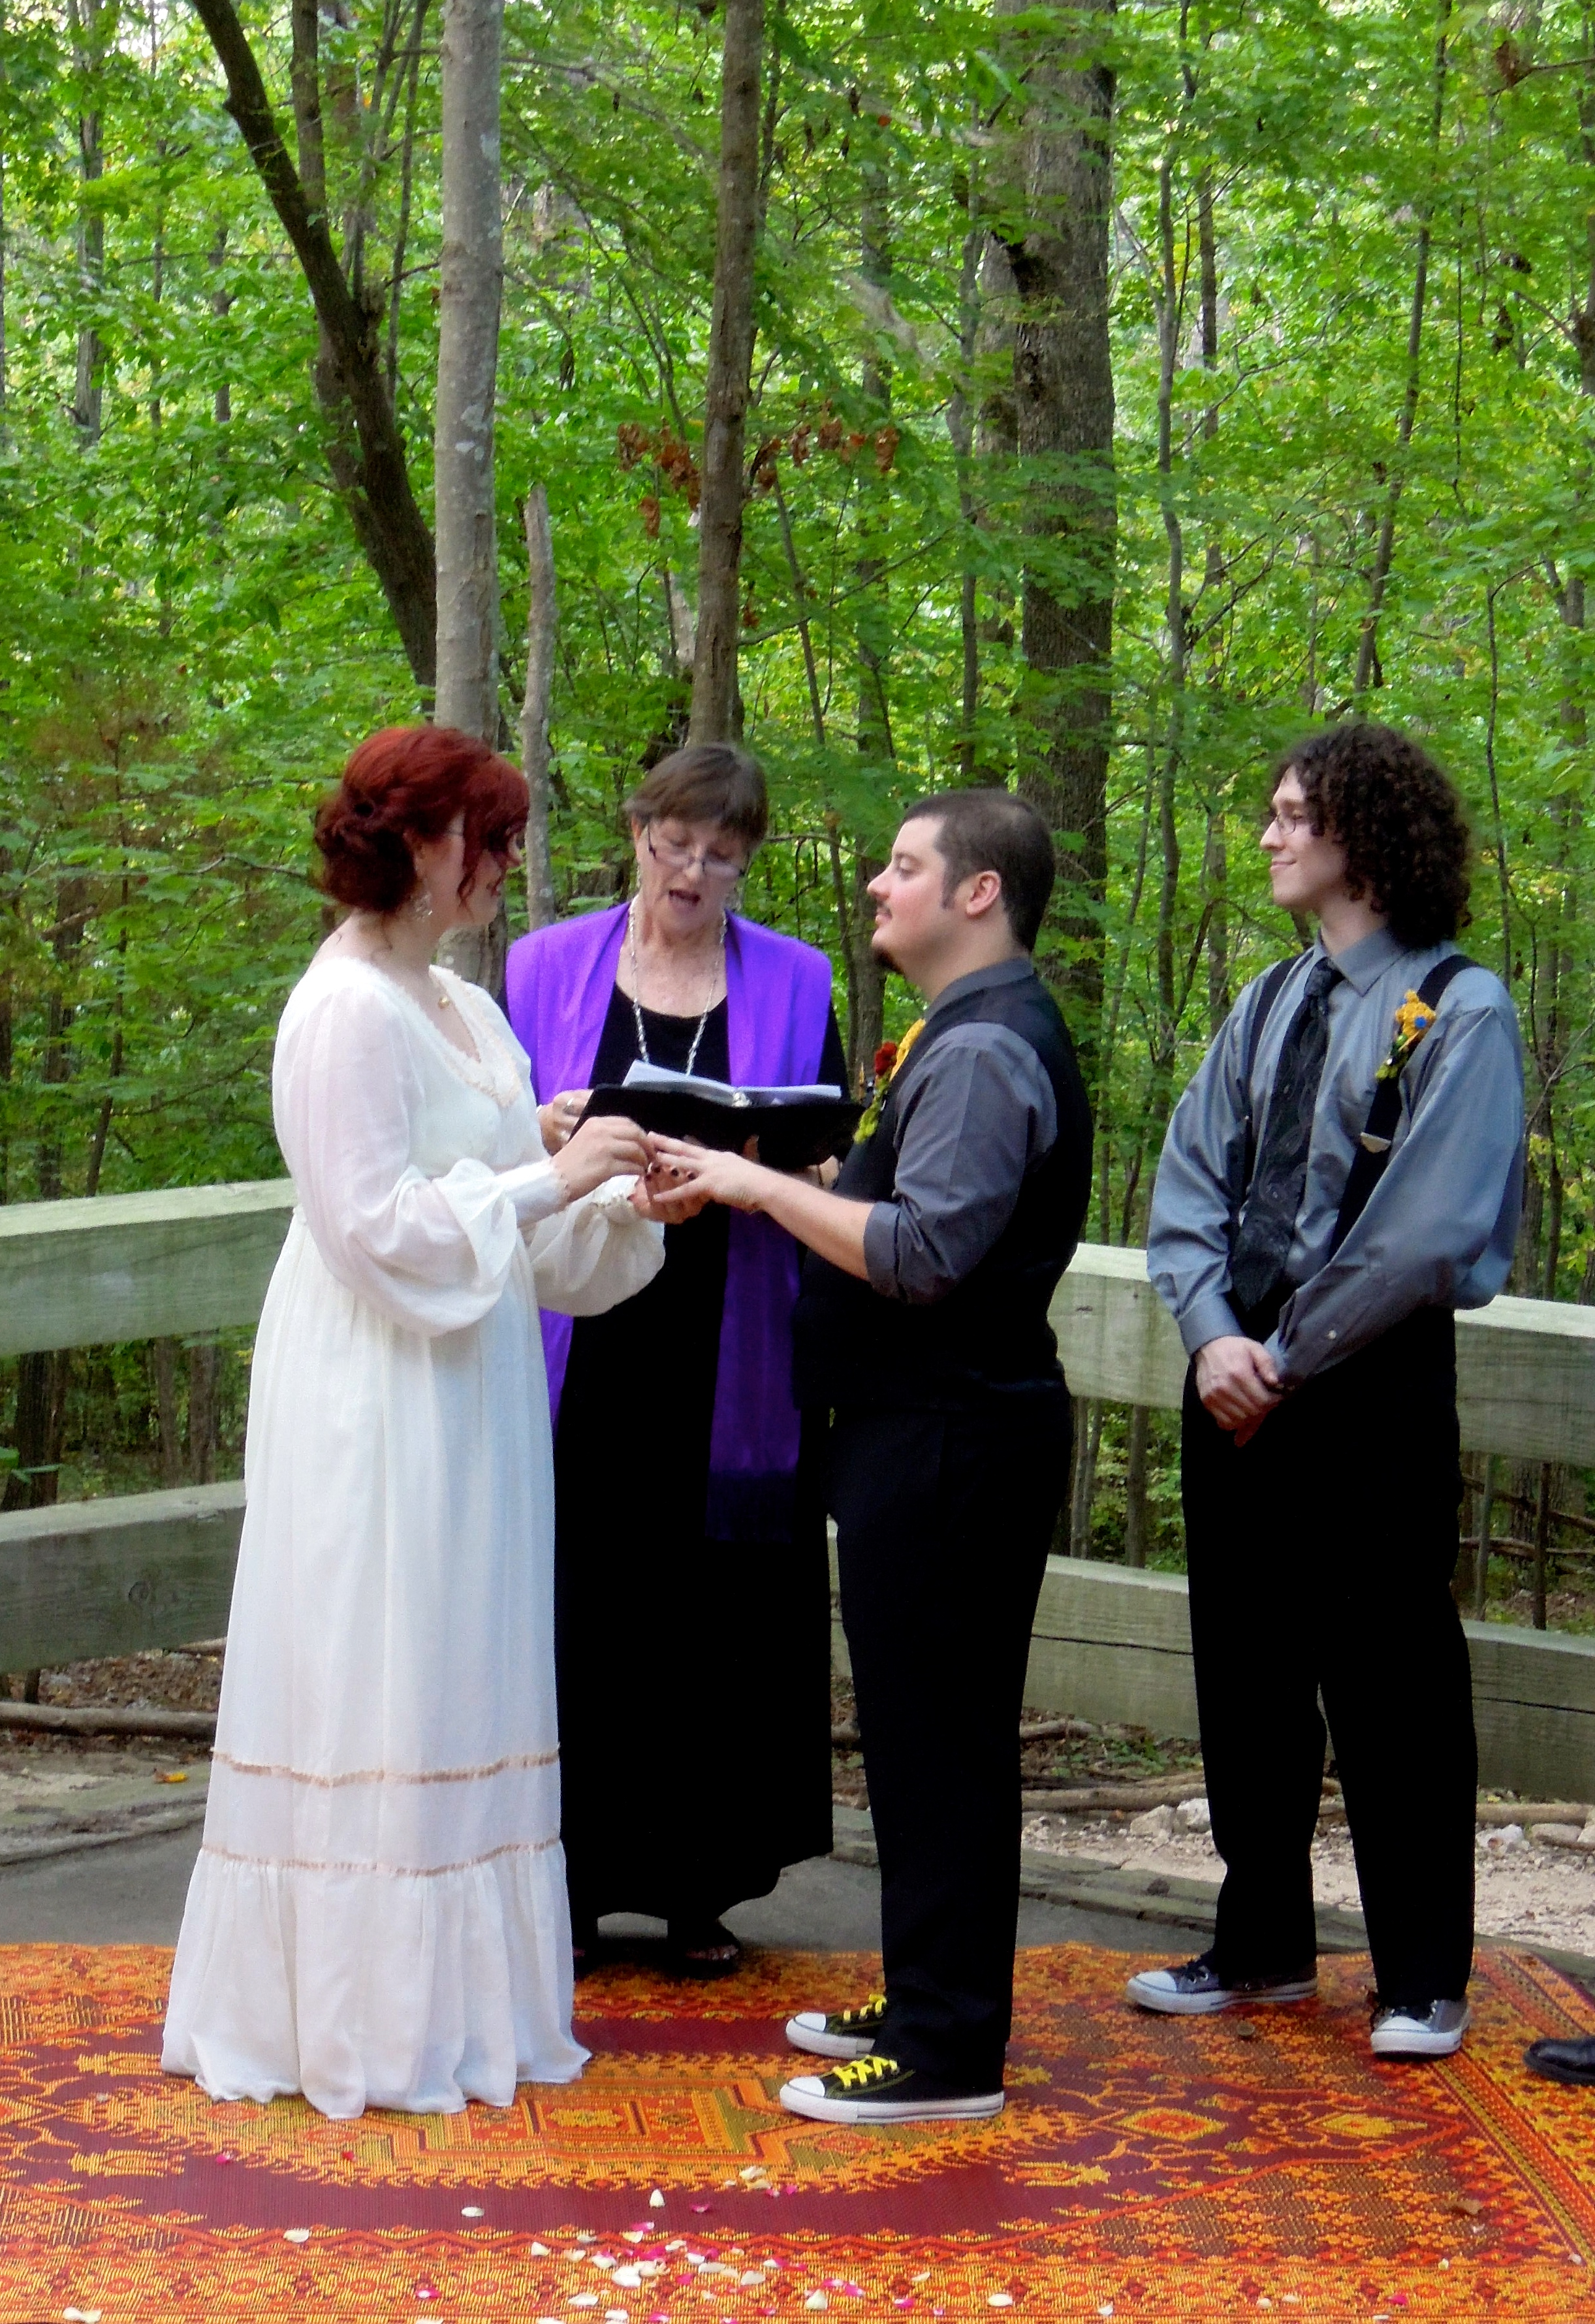 Wedding at Umstead Park (Shelter 1), Raleigh NC